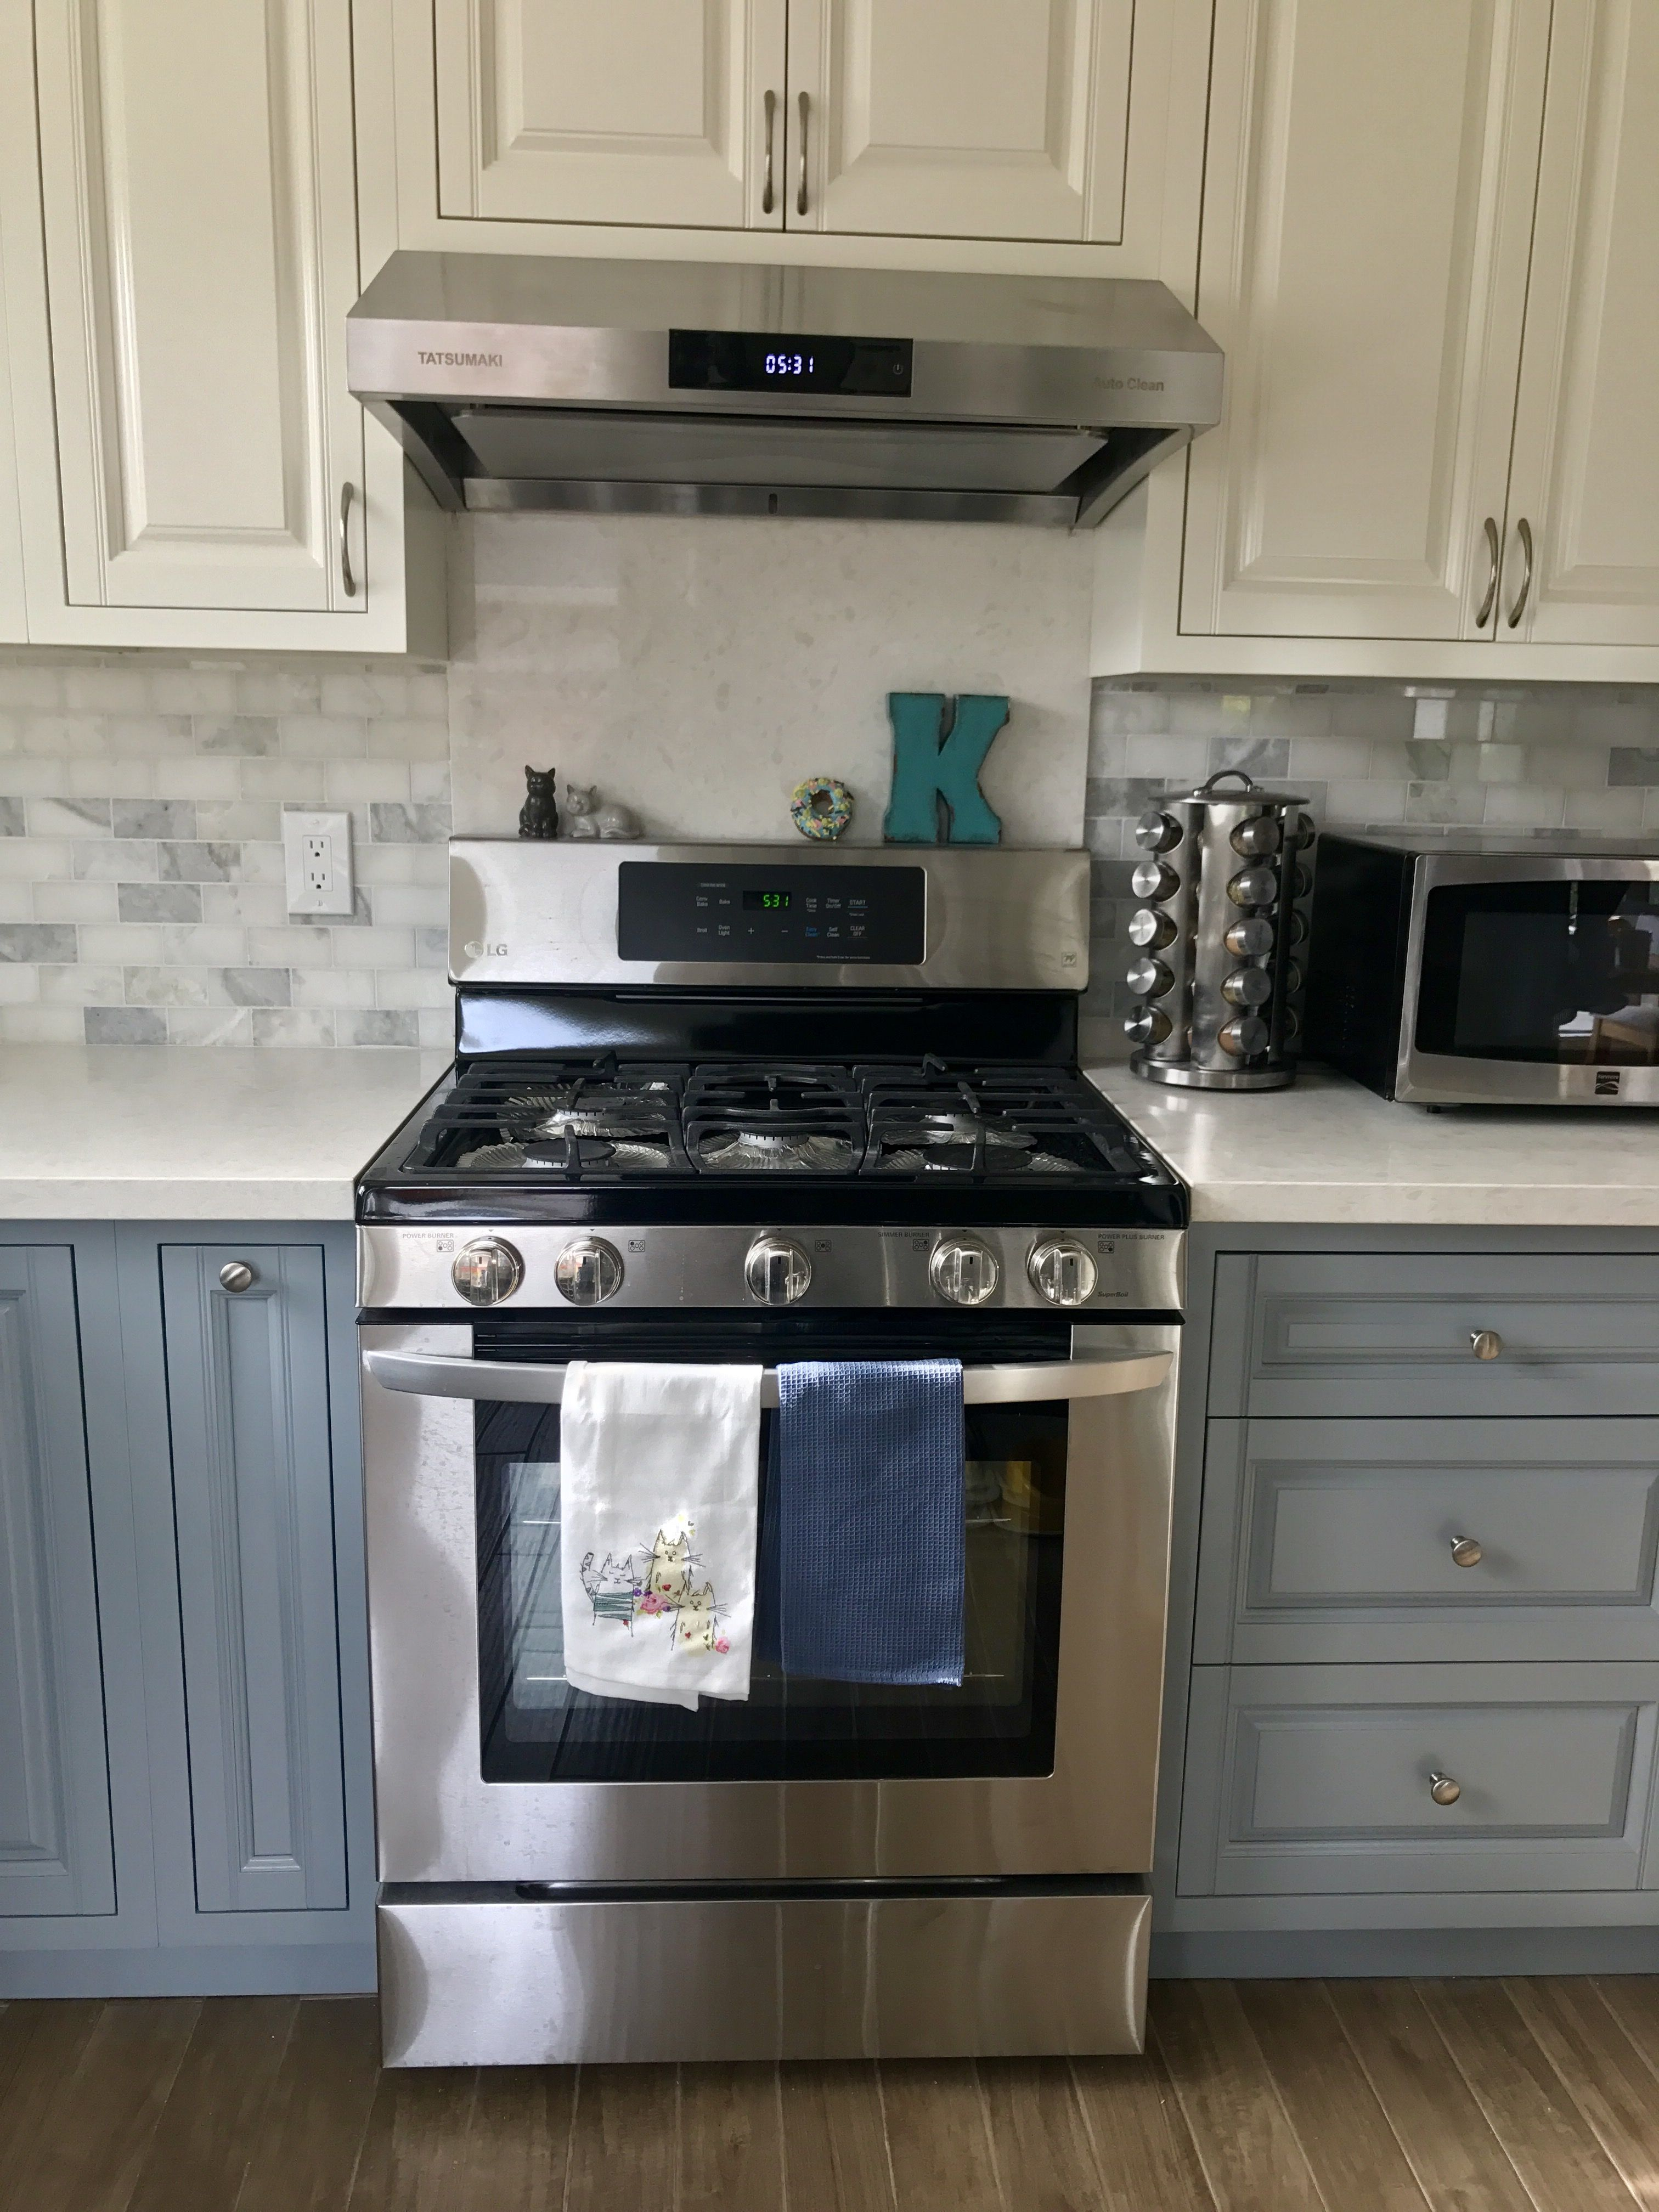 Kitchen Remodeling Quartz Countertop Blue And White Cabinets Marble Style Backsplash Lg Gas Stove T Kitchen Renovation Kitchen Remodel Kitchen Accessories